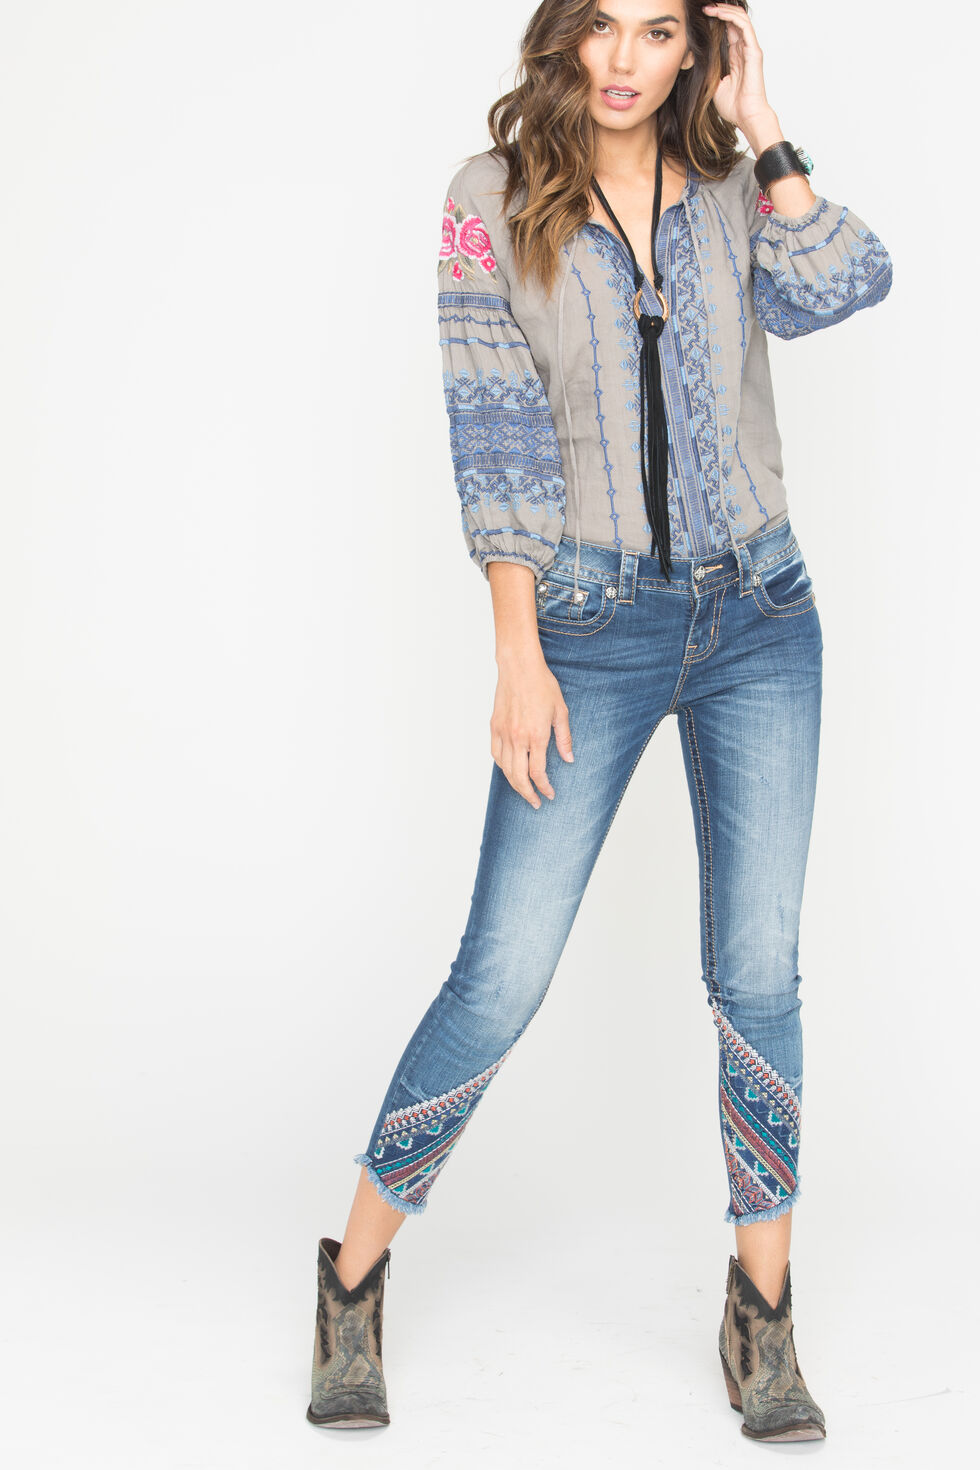 Miss Me Women's Gypsy Tales Ankle Skinny Jeans, Indigo, hi-res